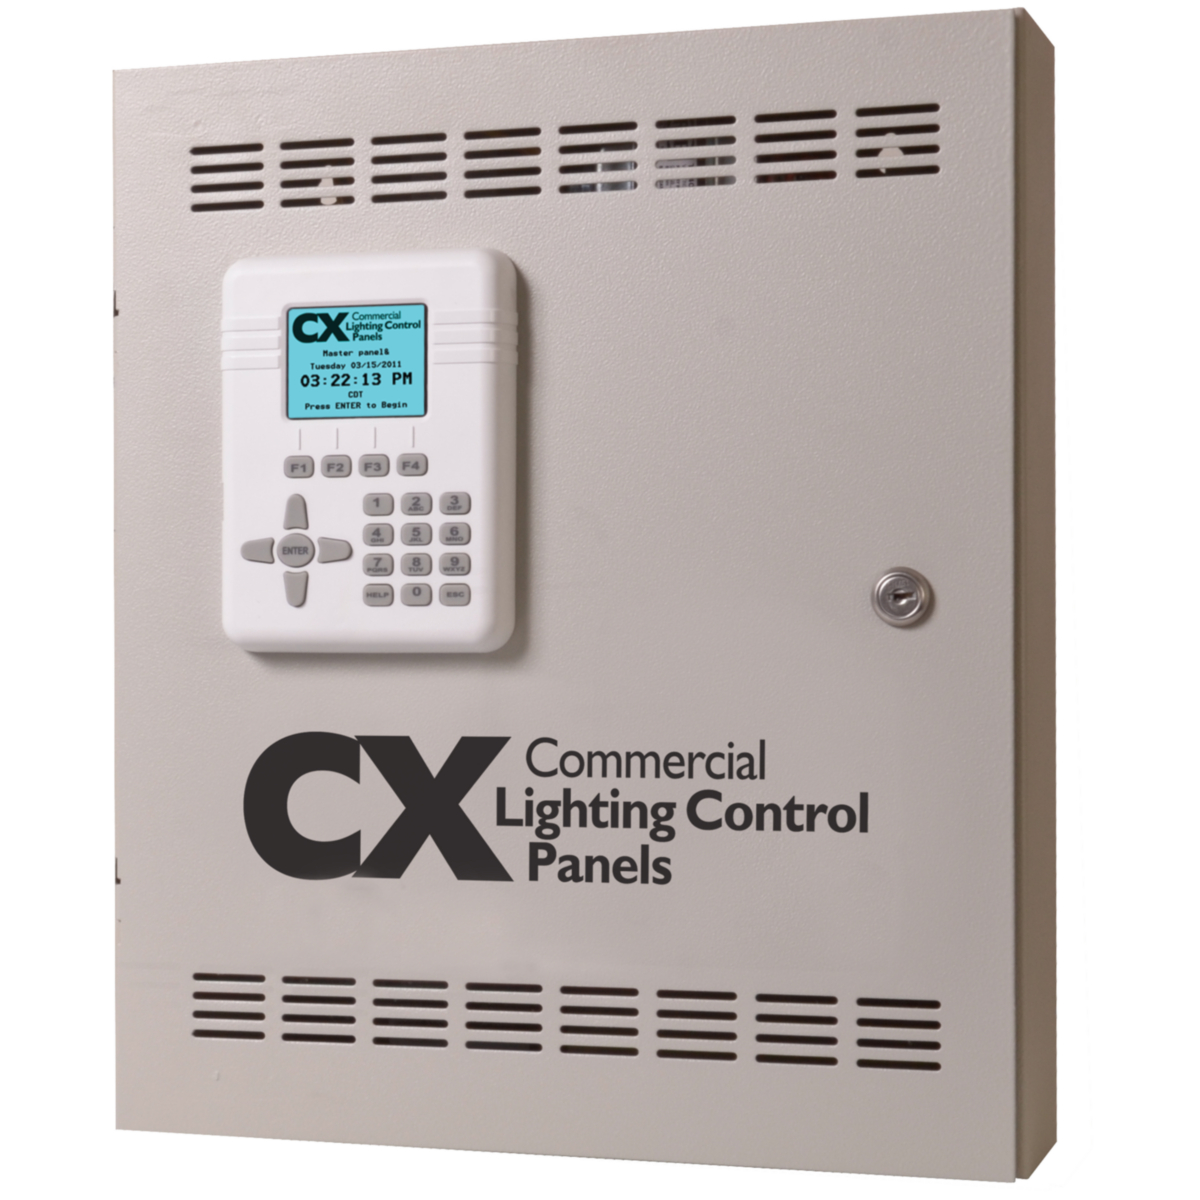 hight resolution of hcs cx04 panel jmk1192 3 prodimage